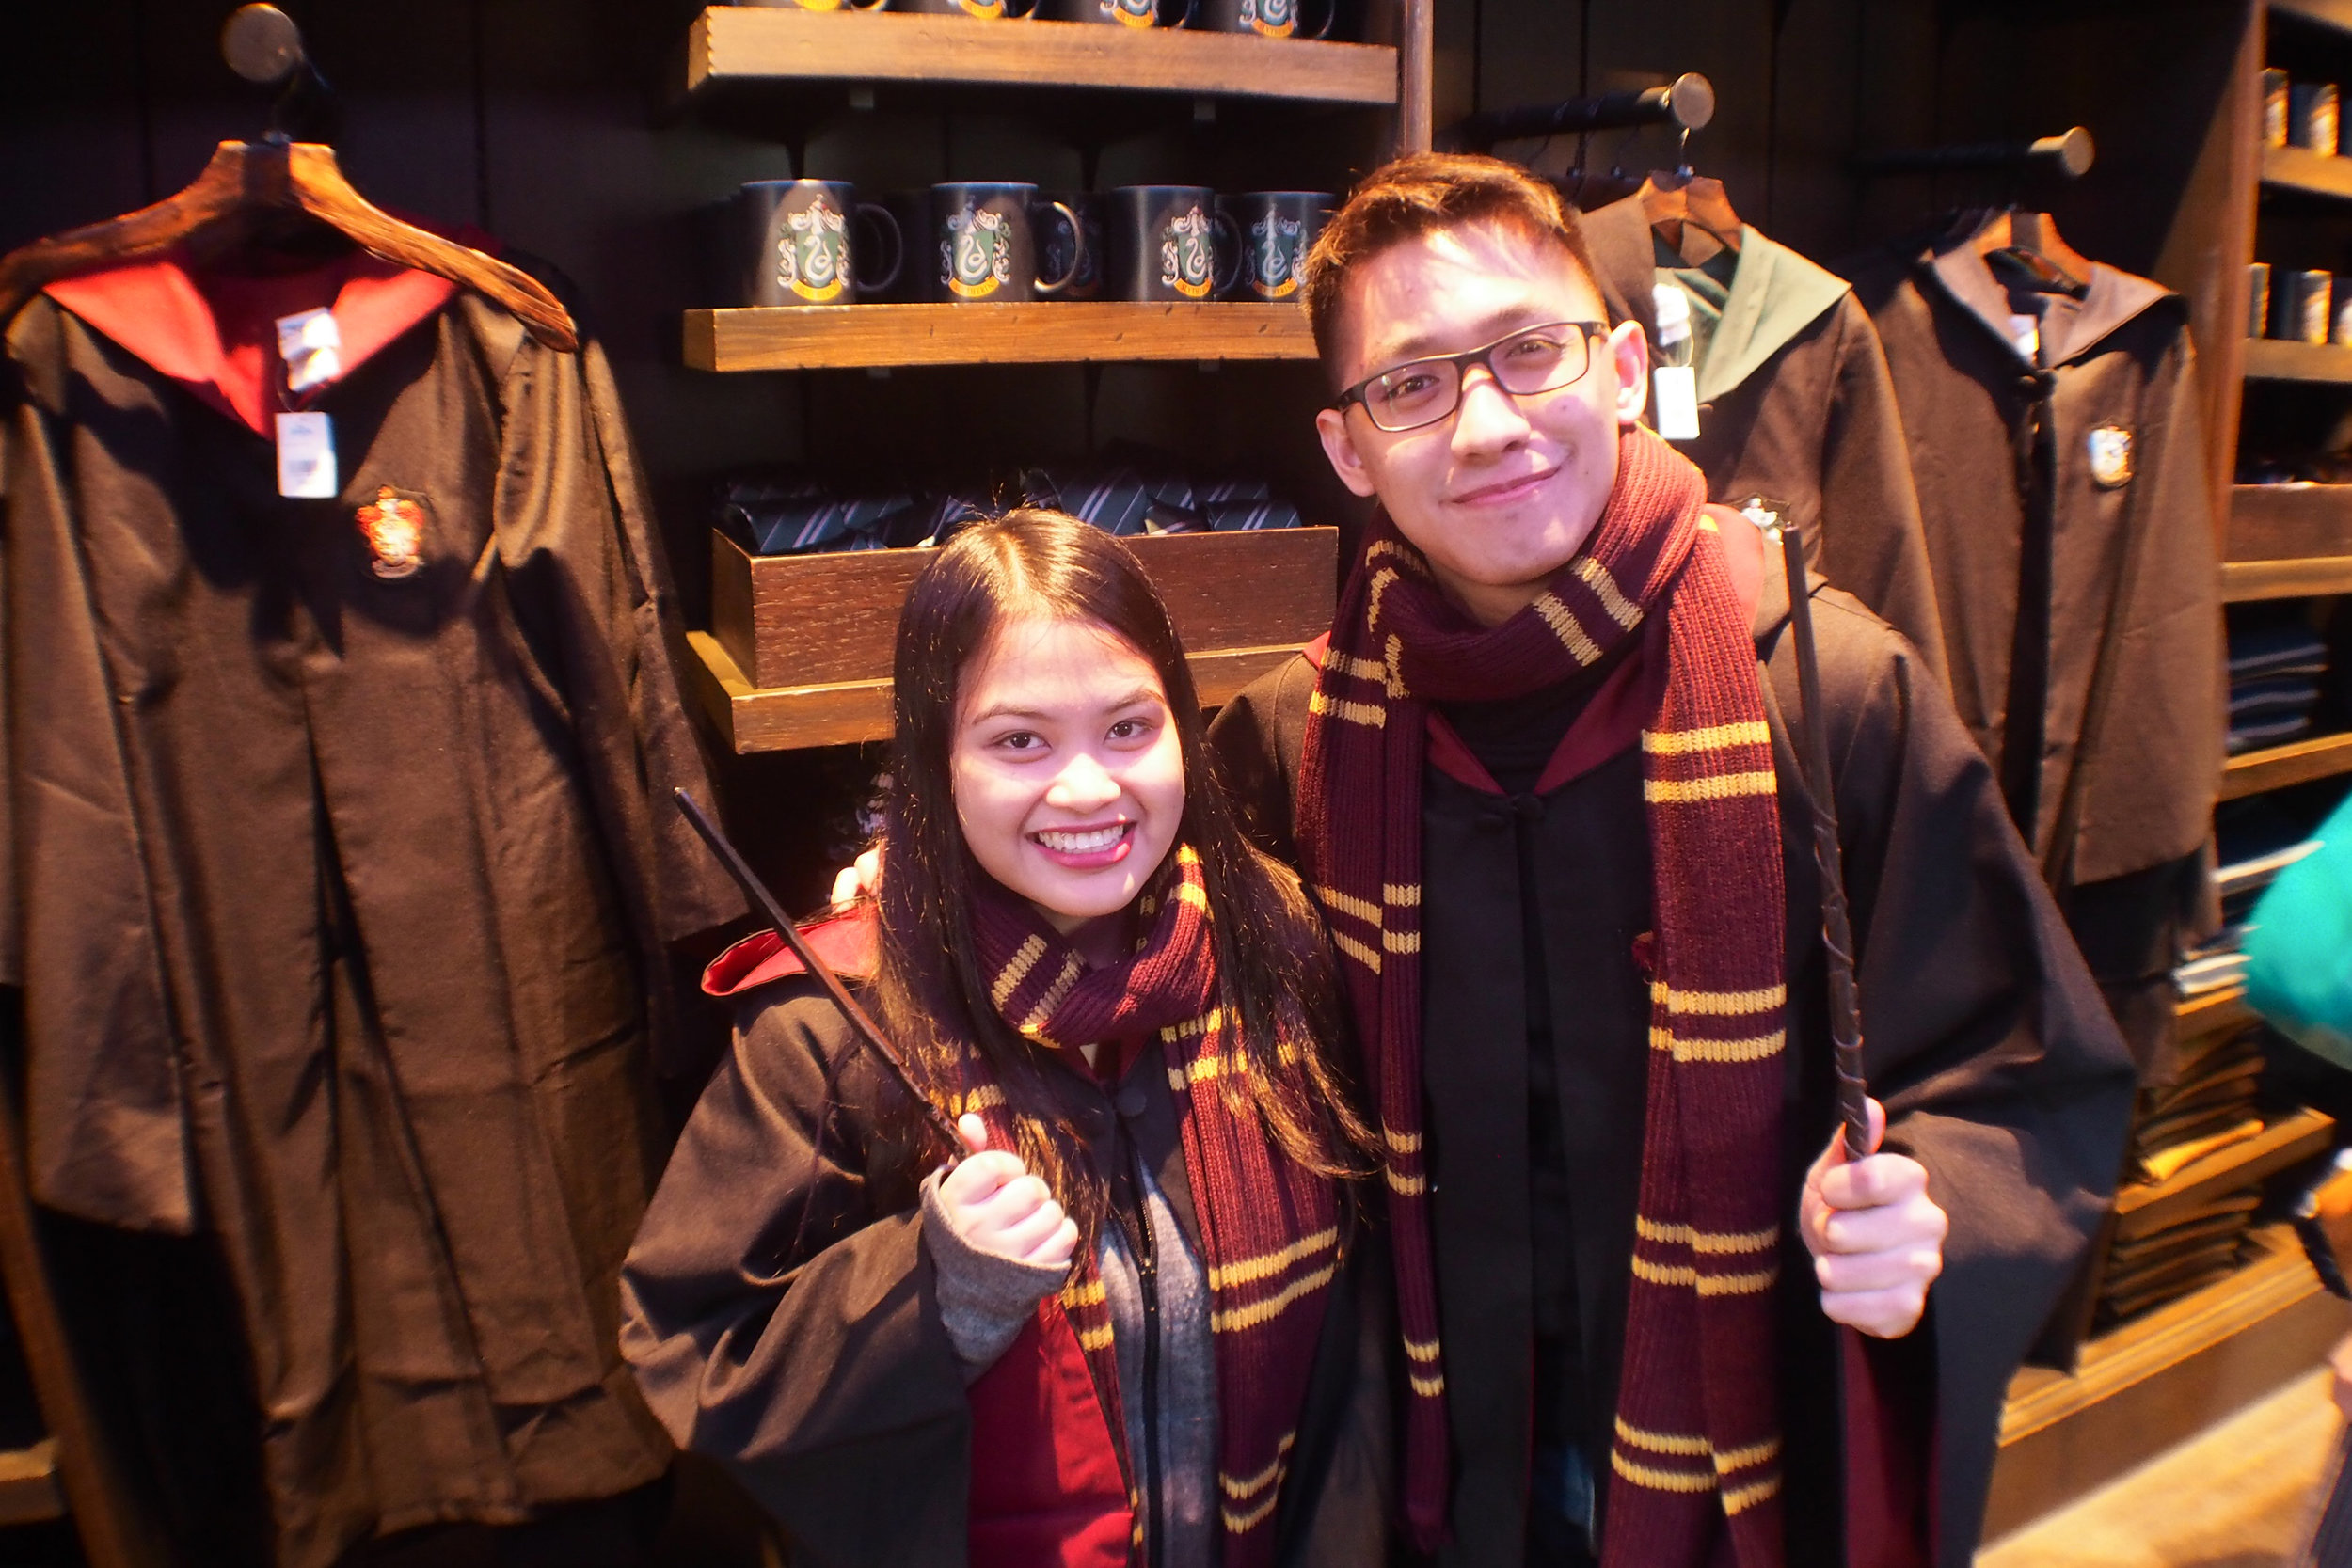 Got our wands and scarves! They're damn expensive. Haha! To complete our outfit for the picture, we just borrowed the robes from the store. The staff didn't mind!